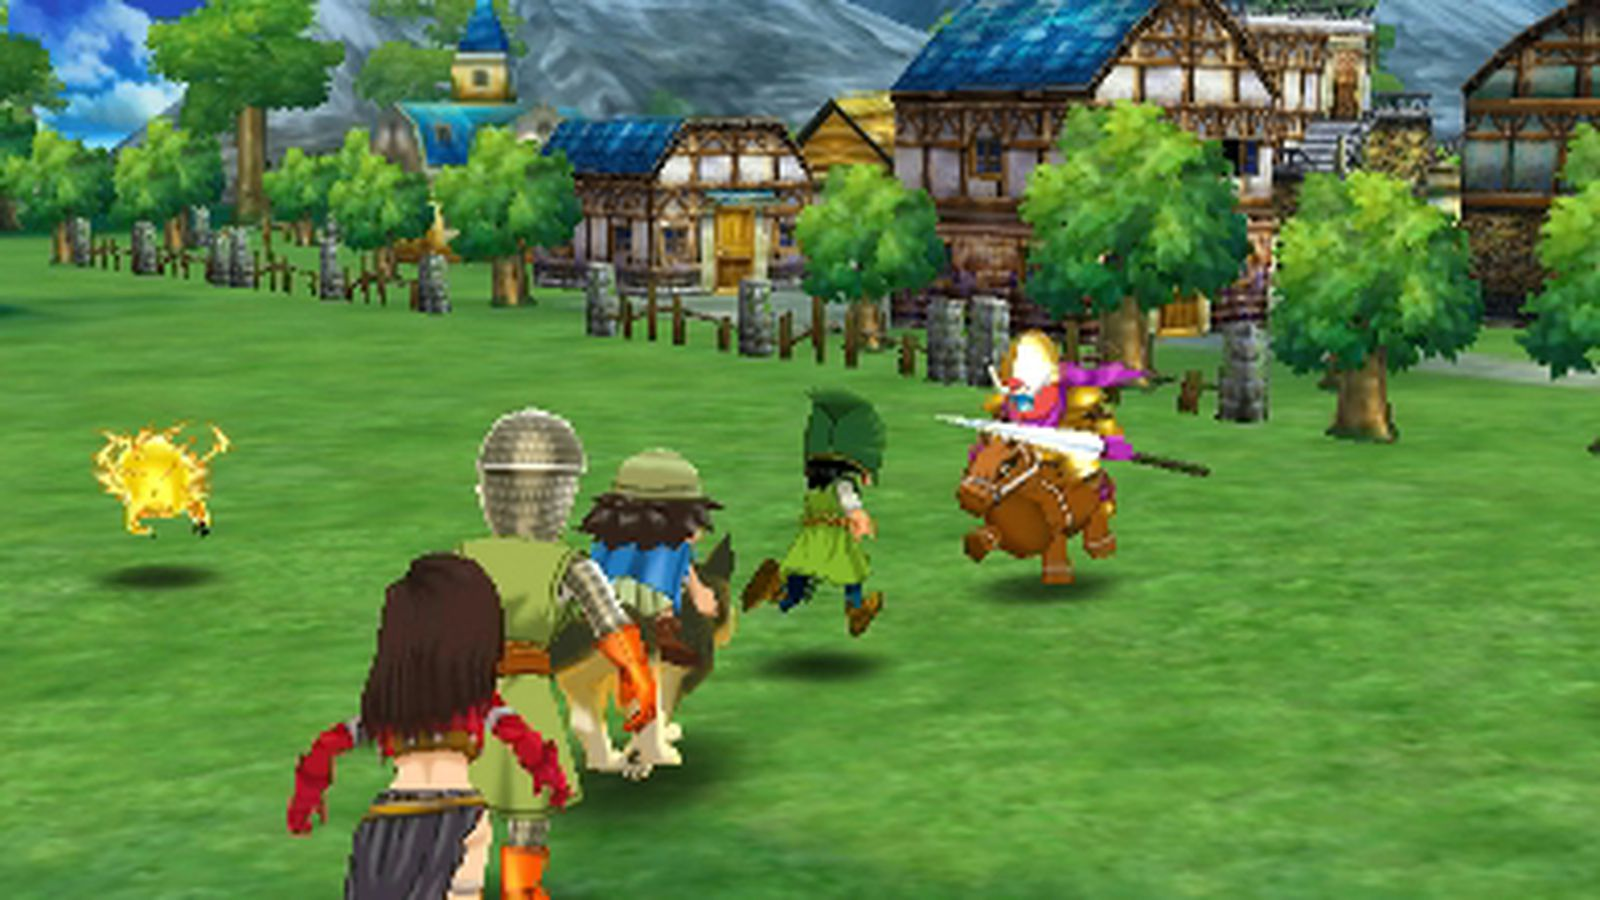 Dragon Quest 7 3ds Fliegender Teppich Watch 14 Minutes Of Gameplay From Dragon Quest 7